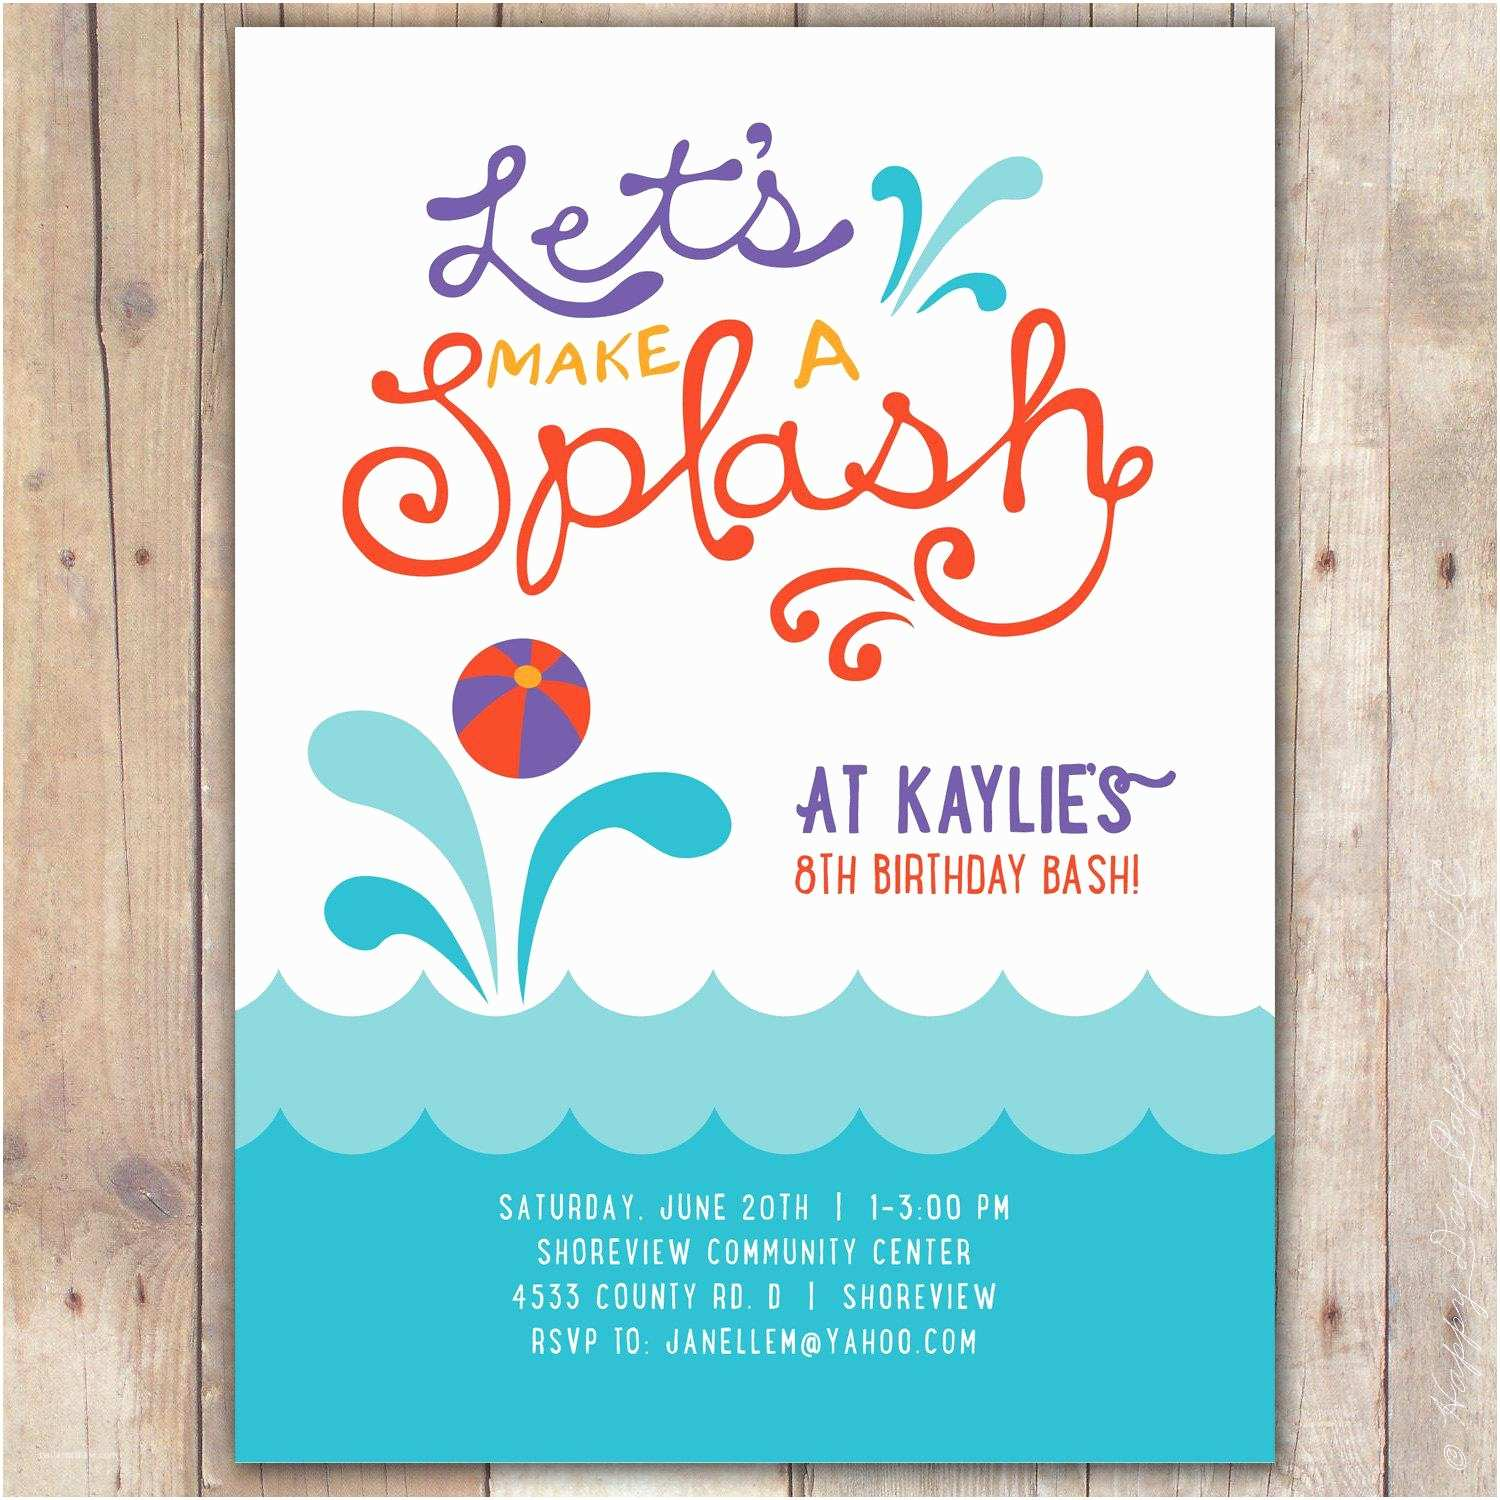 Free Party Invitation Templates Party Invitation Template Party Invitation Templates